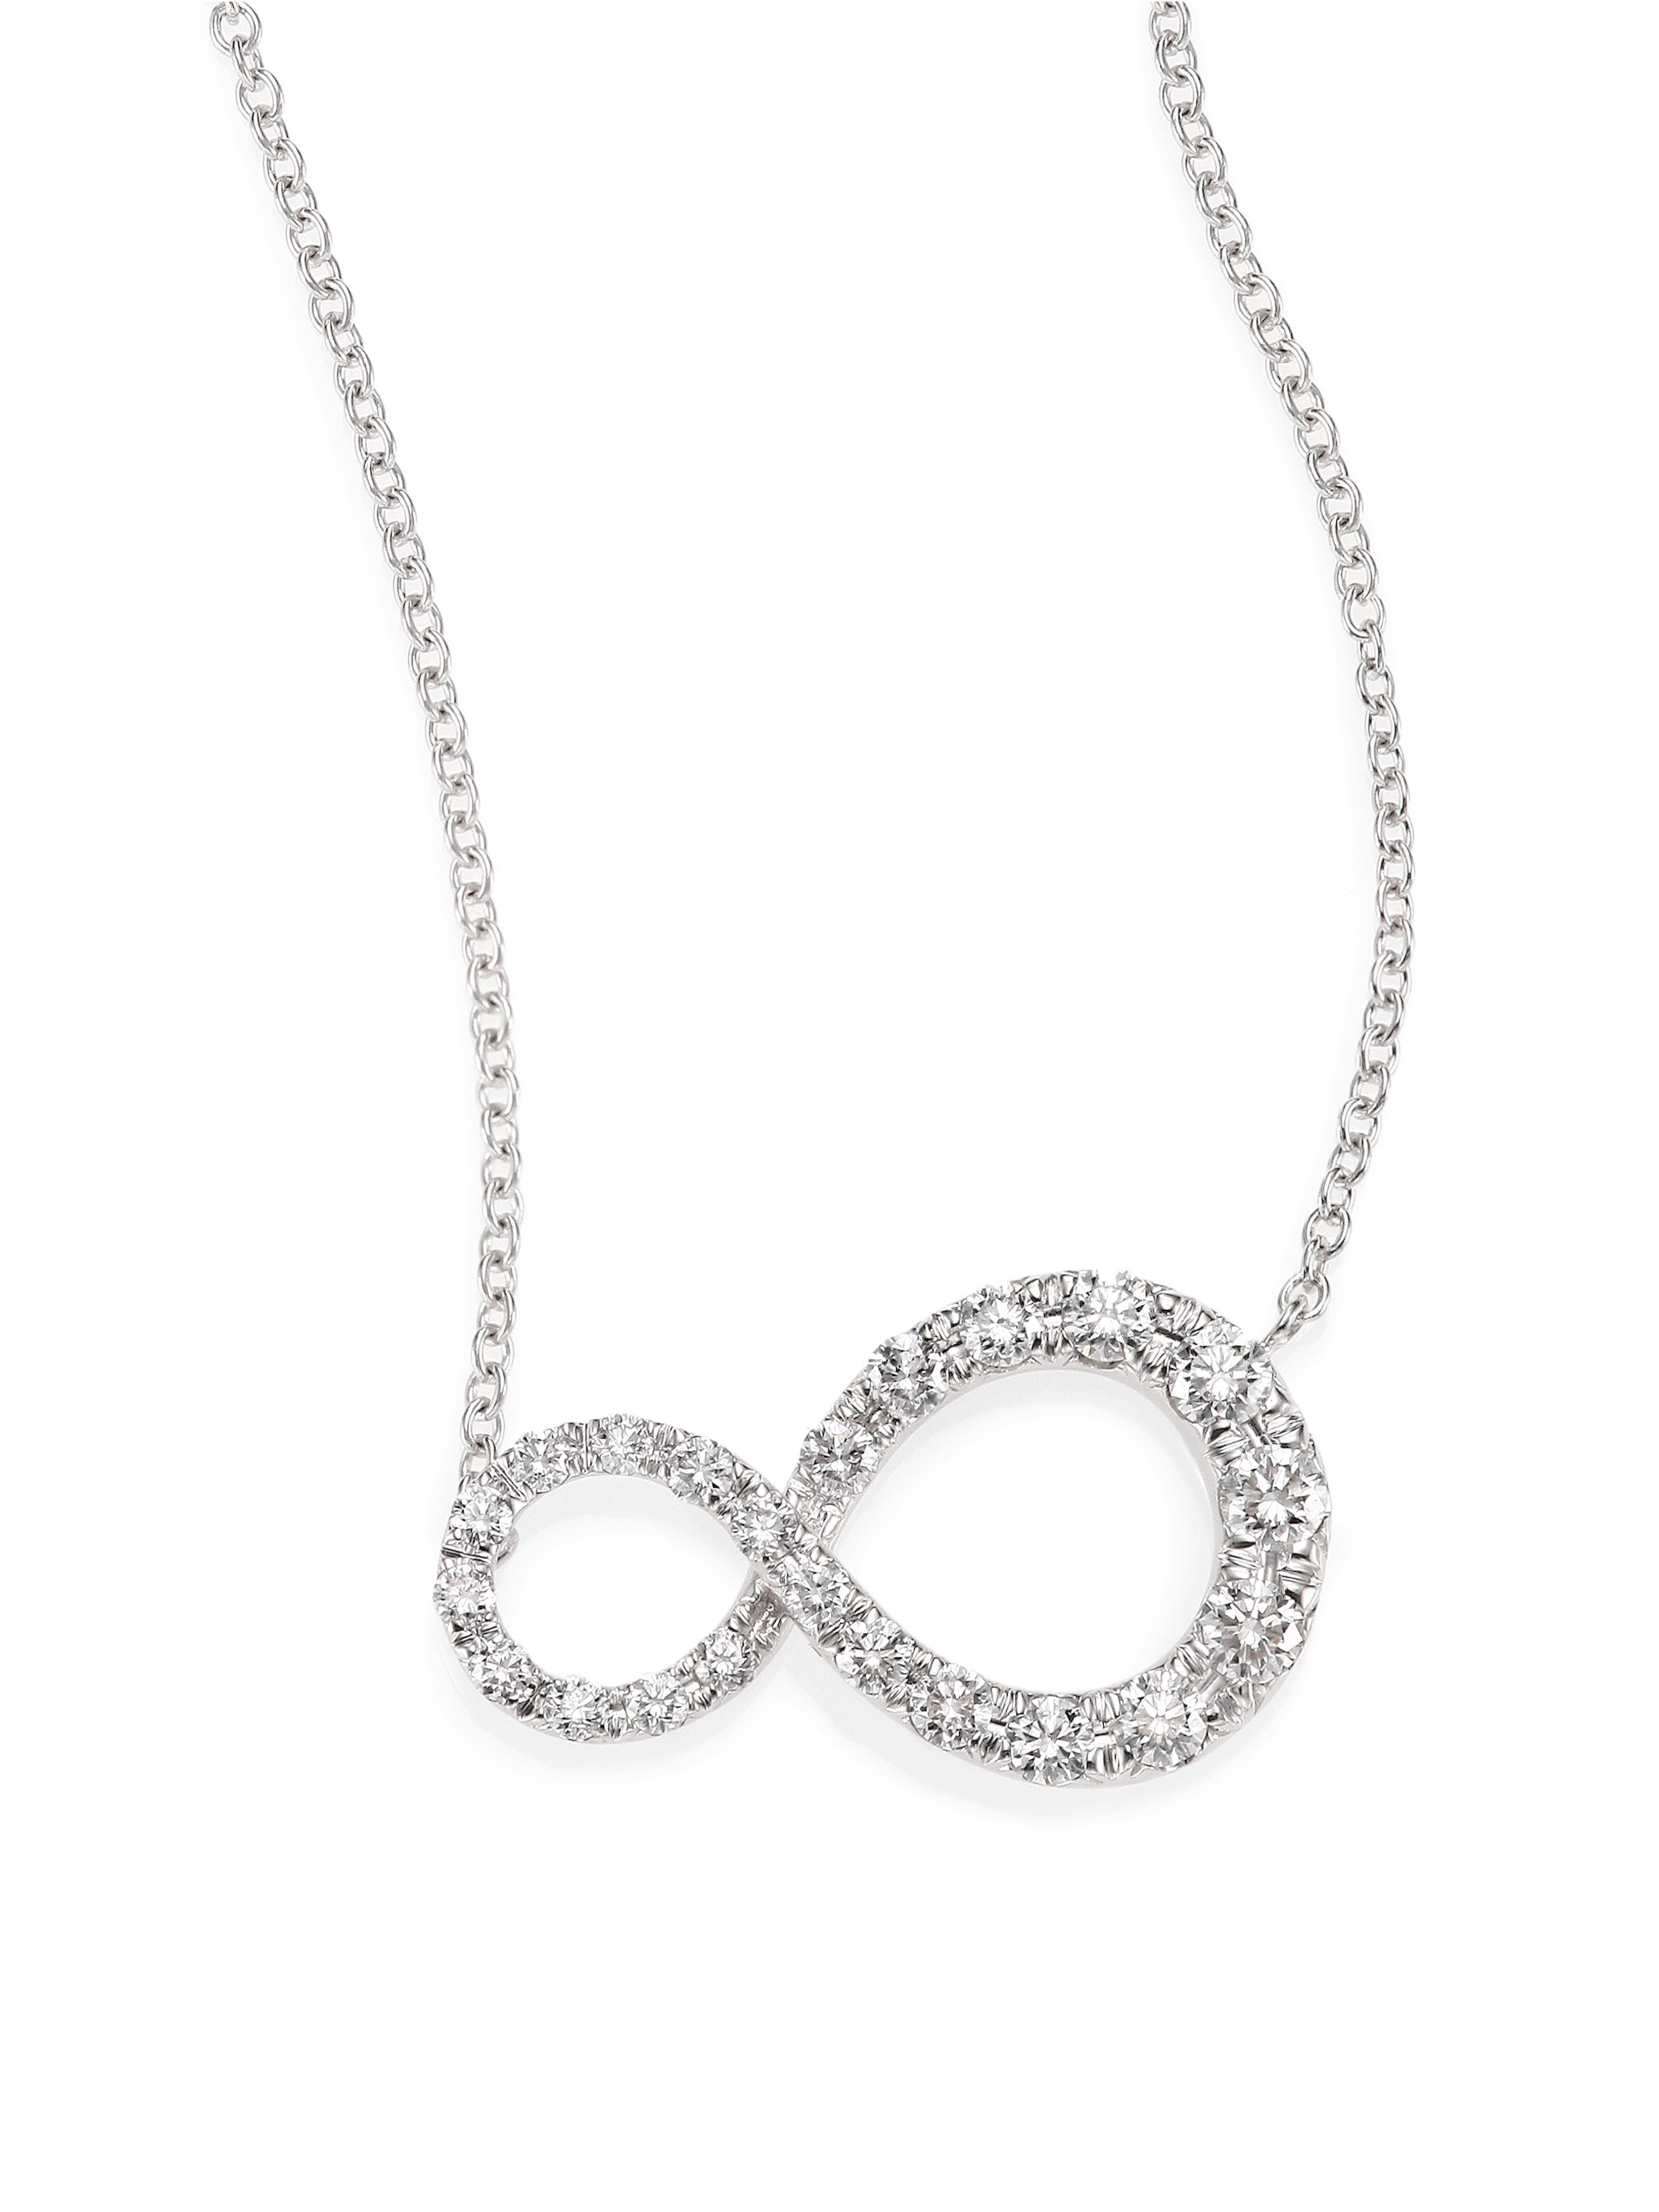 Kwiat Elements Diamond & 18K White Gold Infinity Pendant Necklace In Most Up To Date Sparkling Infinity Locket Element Necklaces (View 19 of 25)